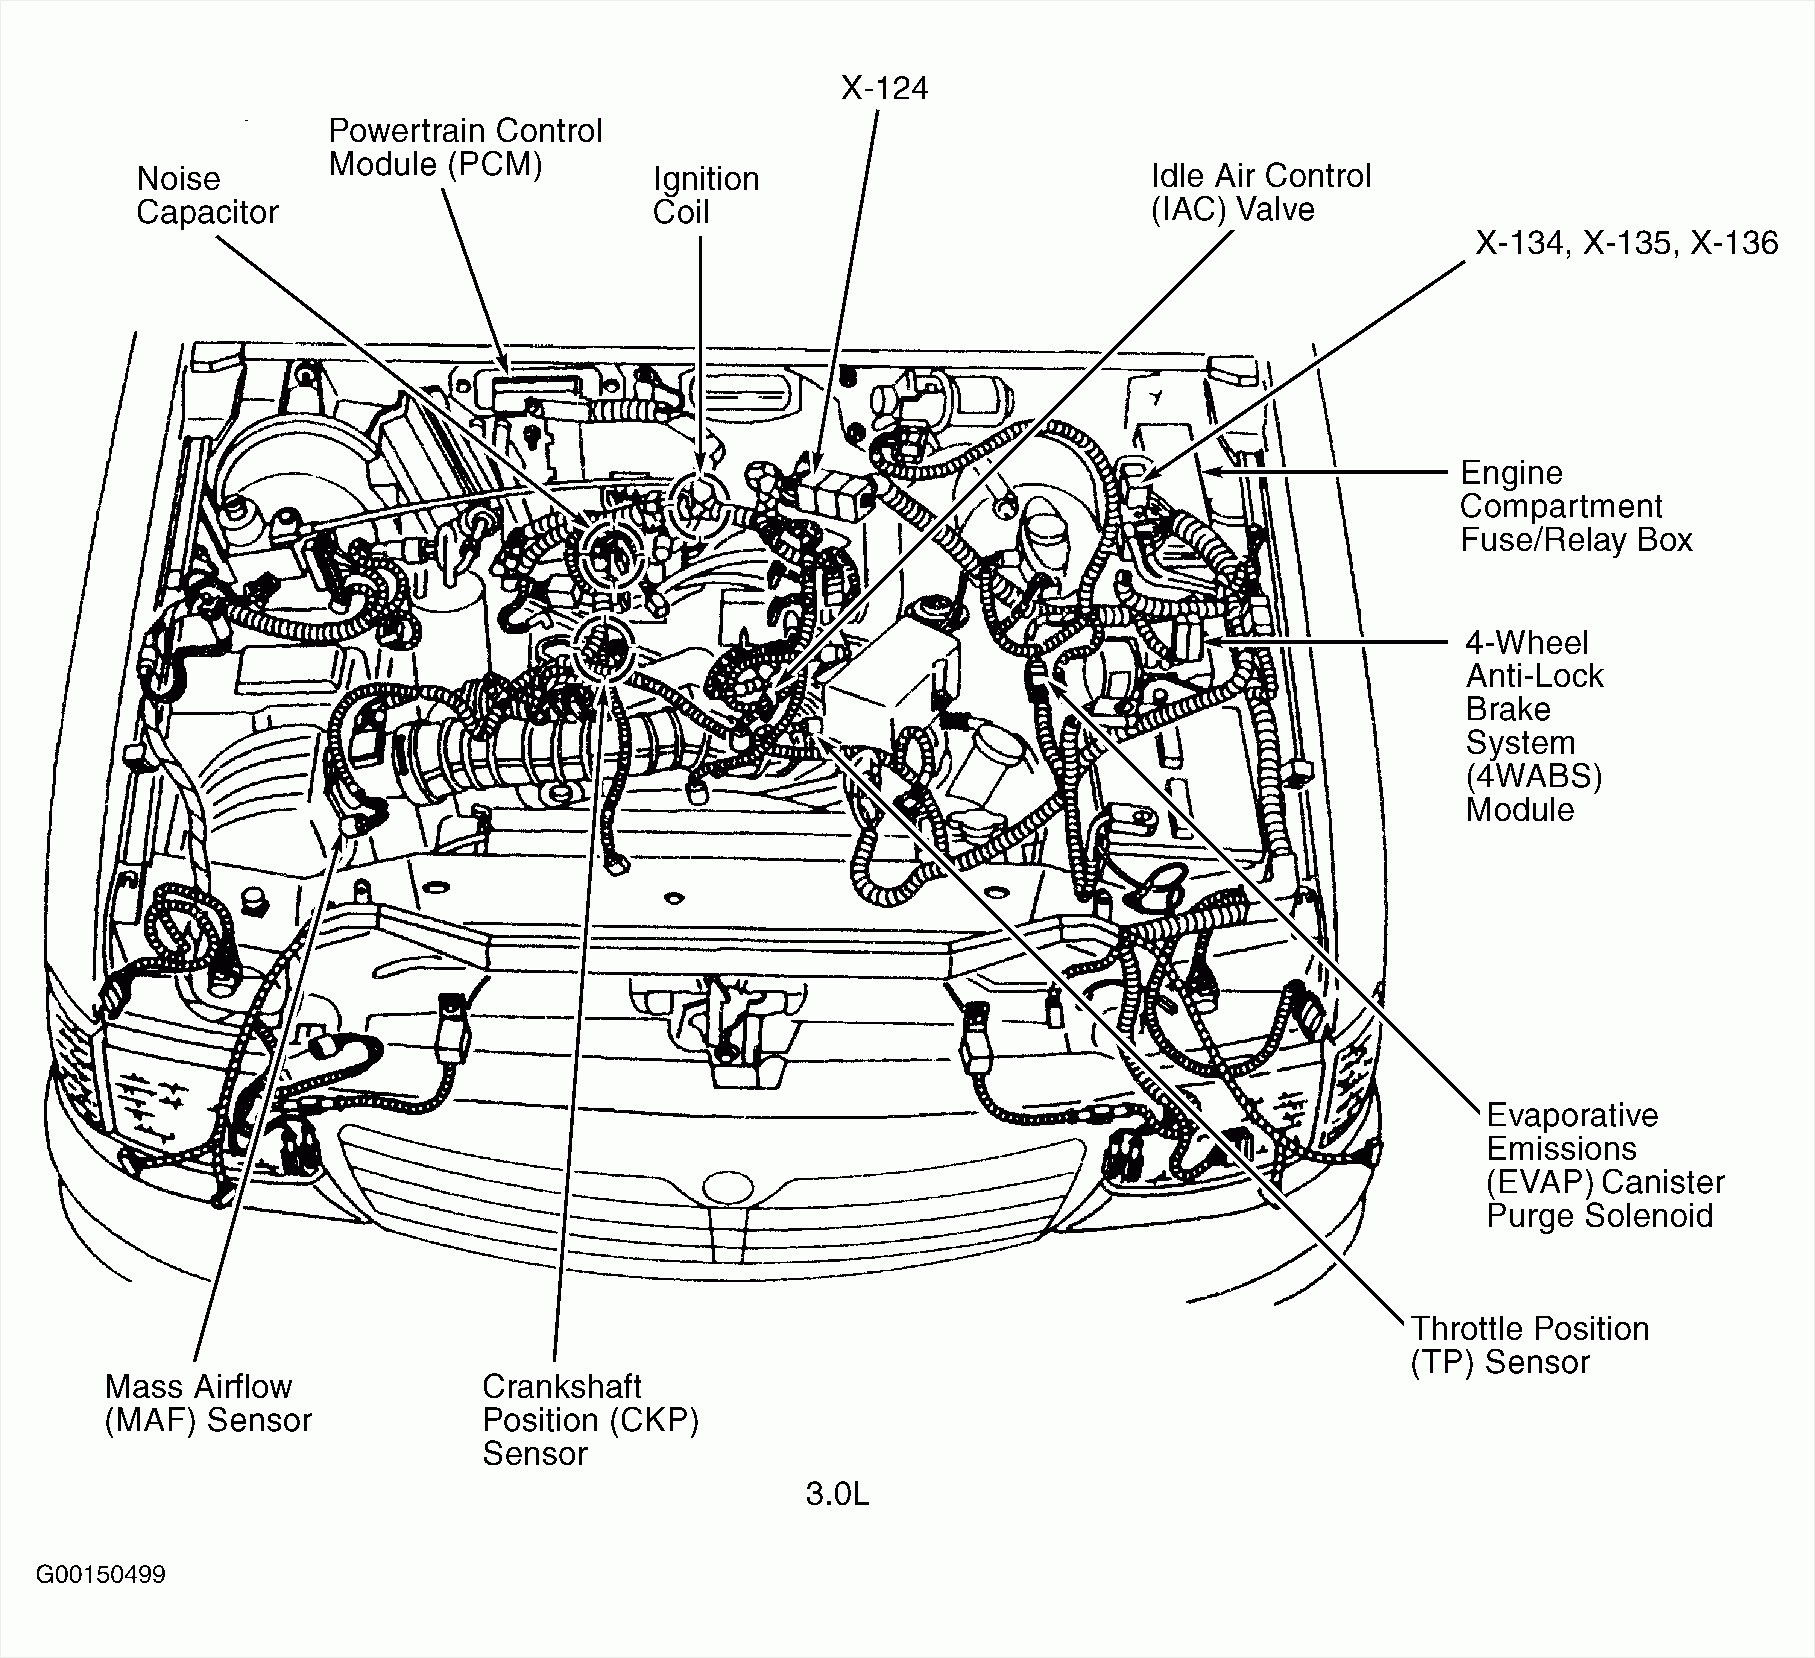 ford 3 3l engine diagram easy rules of wiring diagram u2022 rh lushpuppy co 2000  Chrysler Grand Voyager Parts 2000 Chrysler Grand Voyager